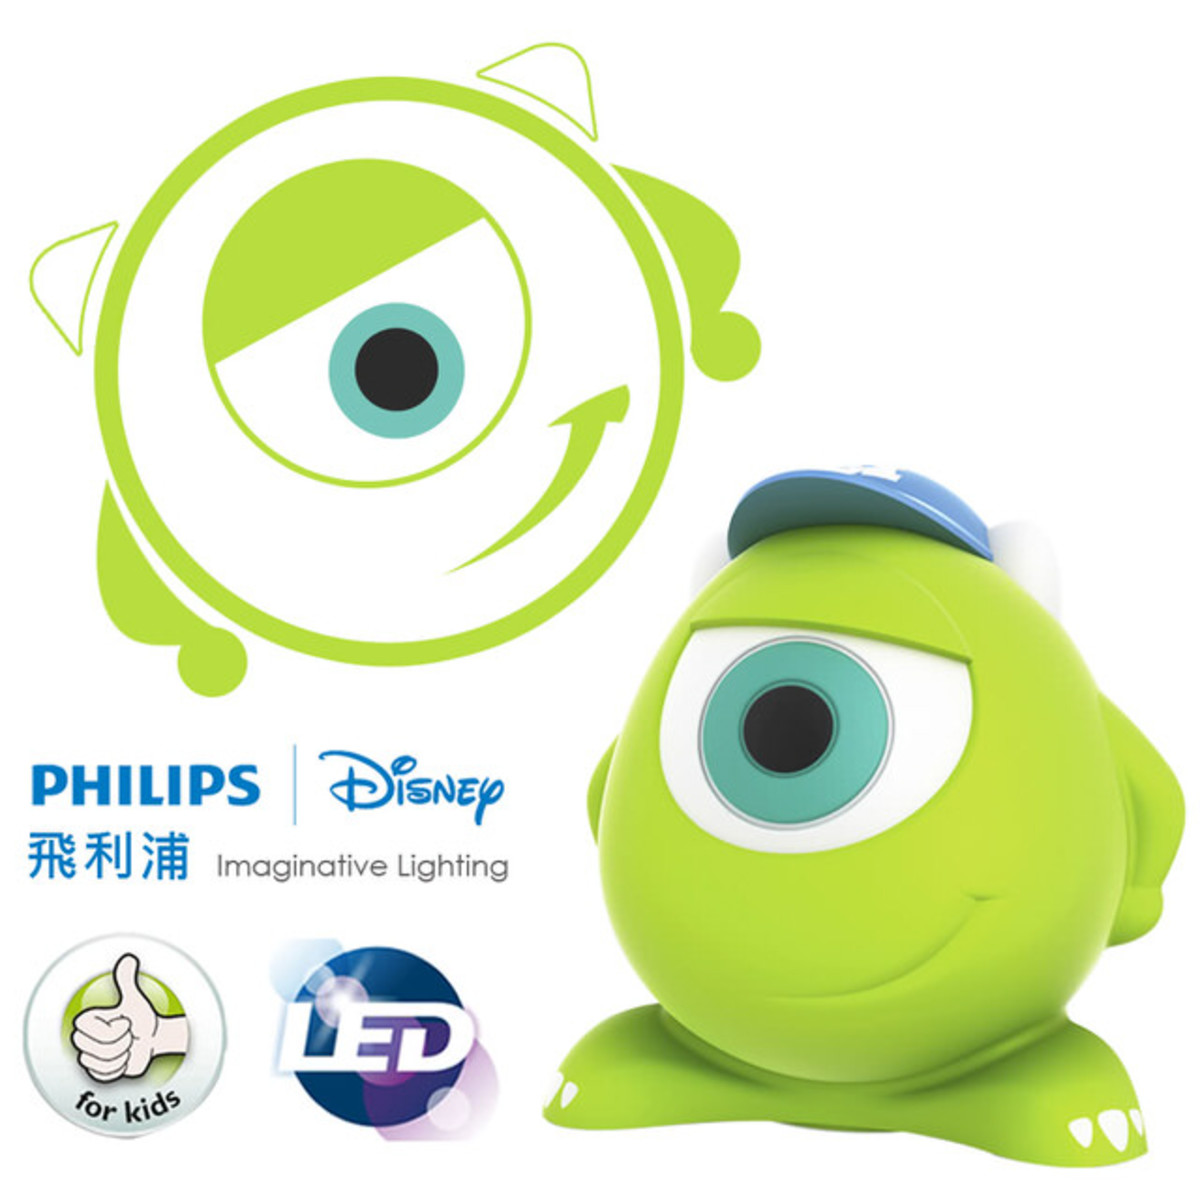 Philips x Disney Table lamp SoftPal Mike